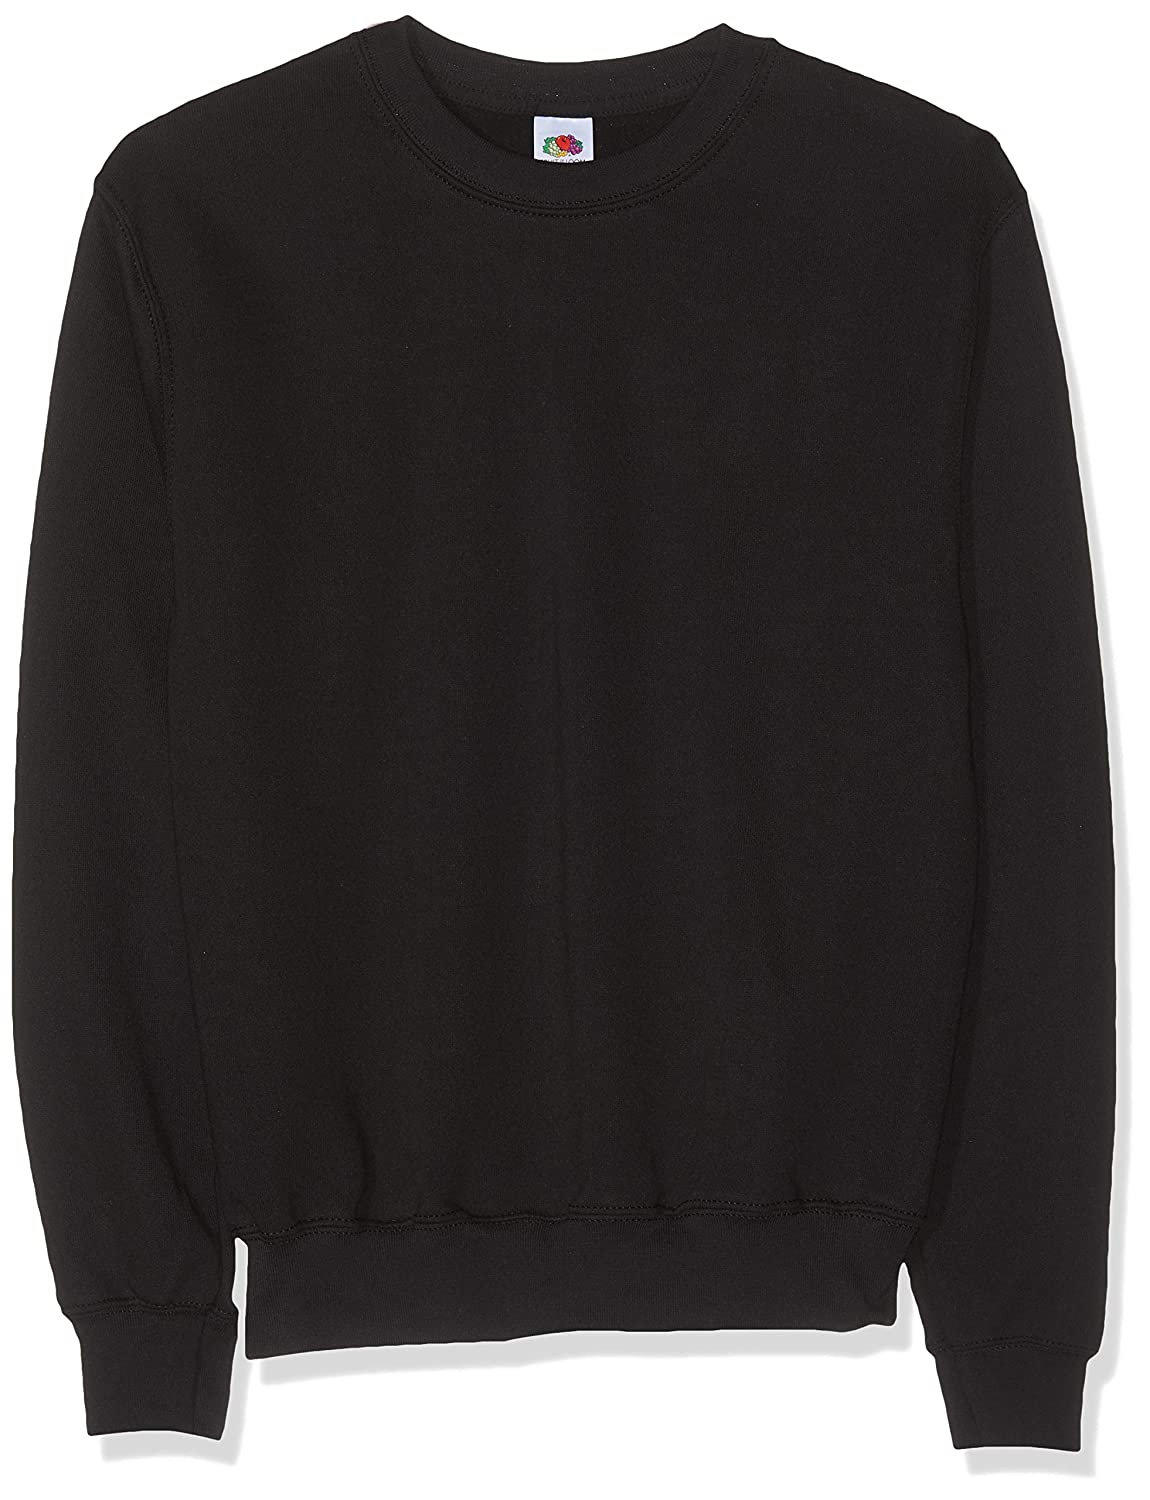 Fruit of the Loom SS027M - Sudadera Hombre, Negro (Black), Large